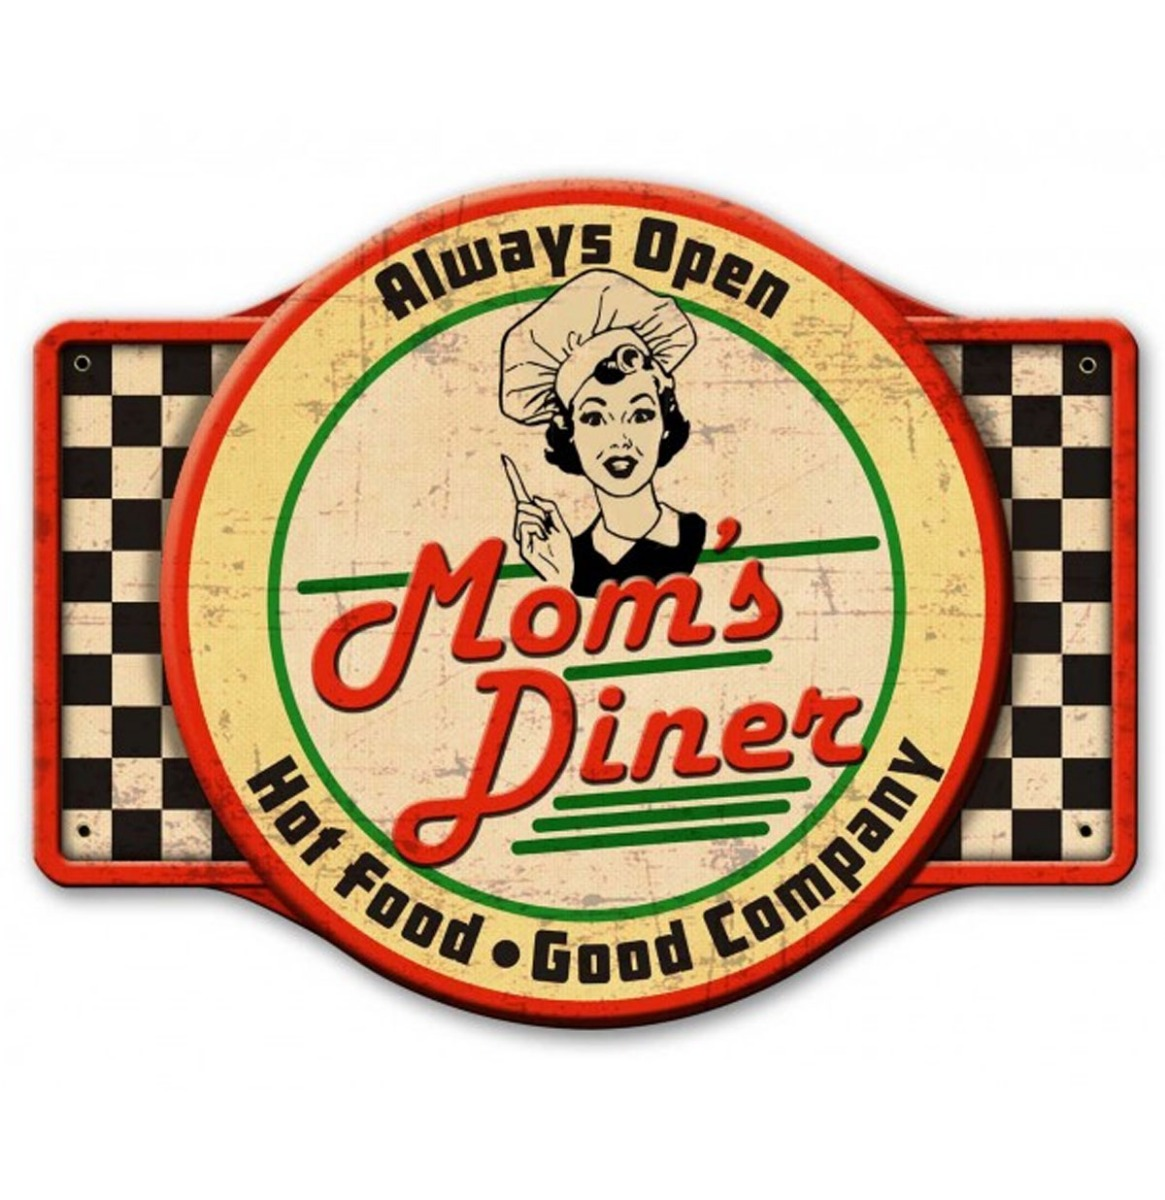 Mom's Diner Always Open Zwaar Metalen Bord 61 x 46 cm